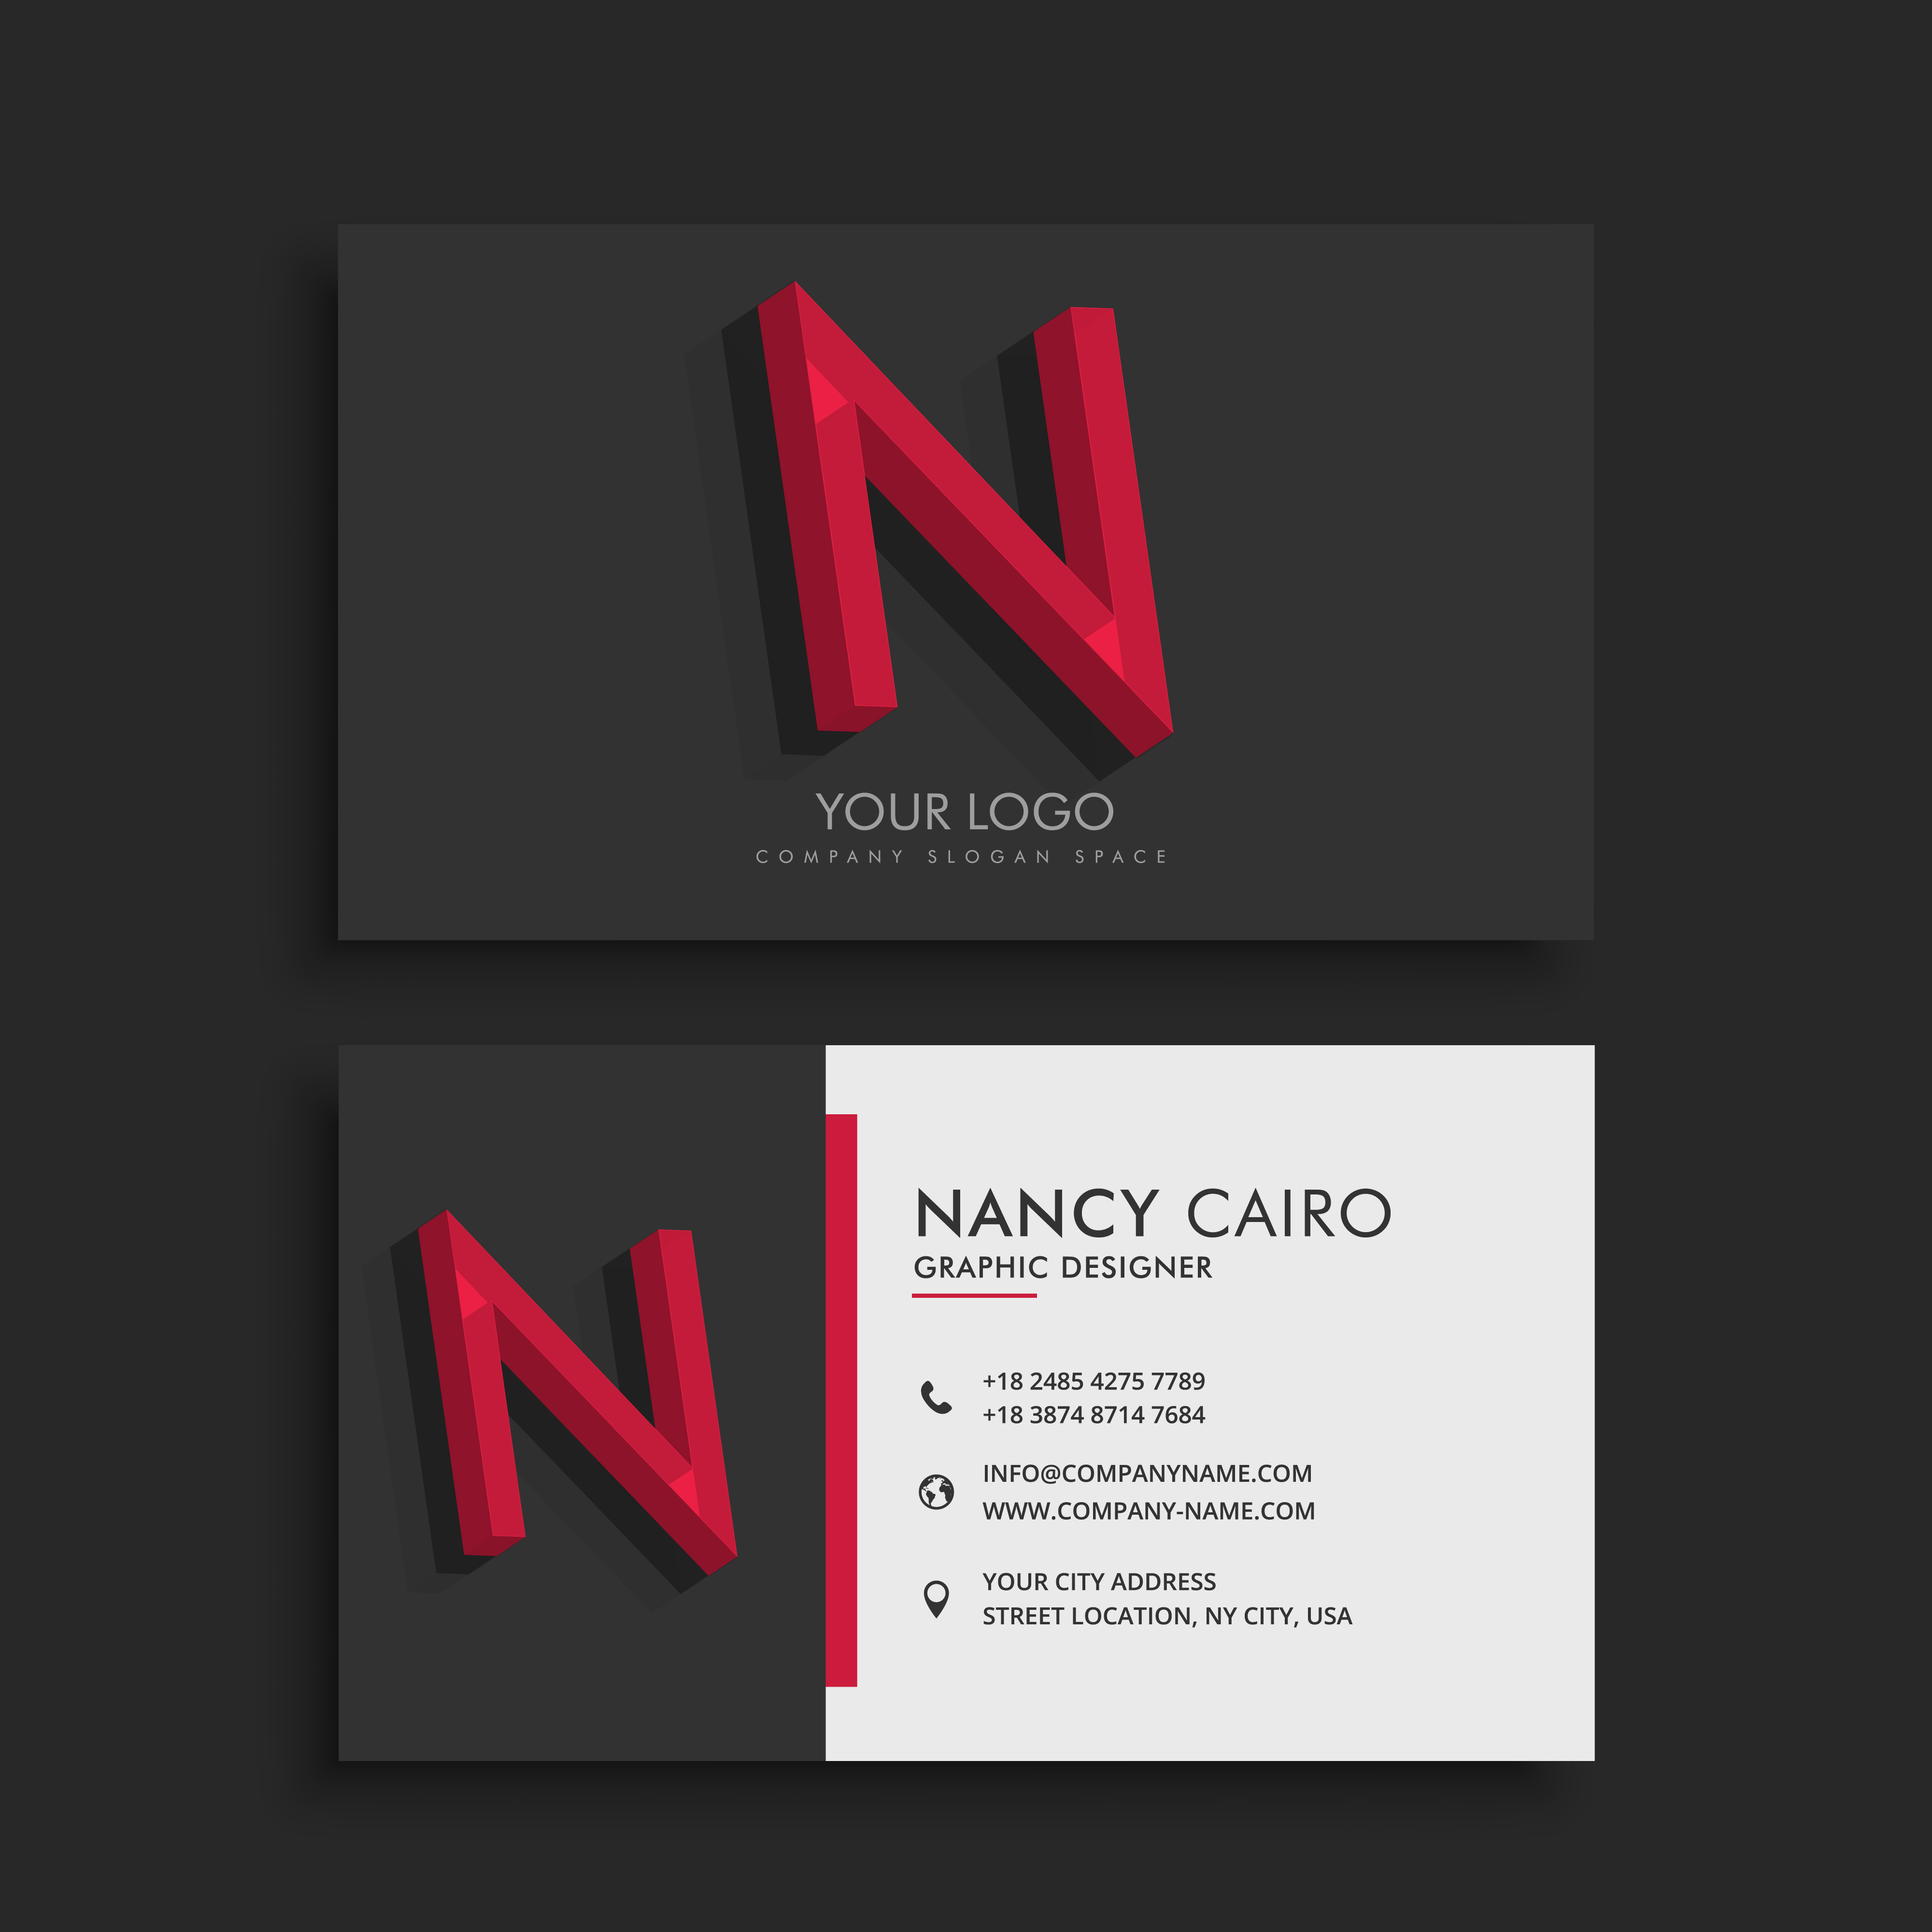 vector-clean-dark-business-card-with-letter-n Varsity Letter I Template on professional letter template, mission letter template, letter v template, middle school letter template, varsity letters alphabet, sophomore letter template, letter f template, team letter template, football letter template, white letter template, black letter template, alumni letter template, national letter of intent template, pro letter template, final four template, open letter template, block letters template, blue letter template, impact letter template, college letter template,